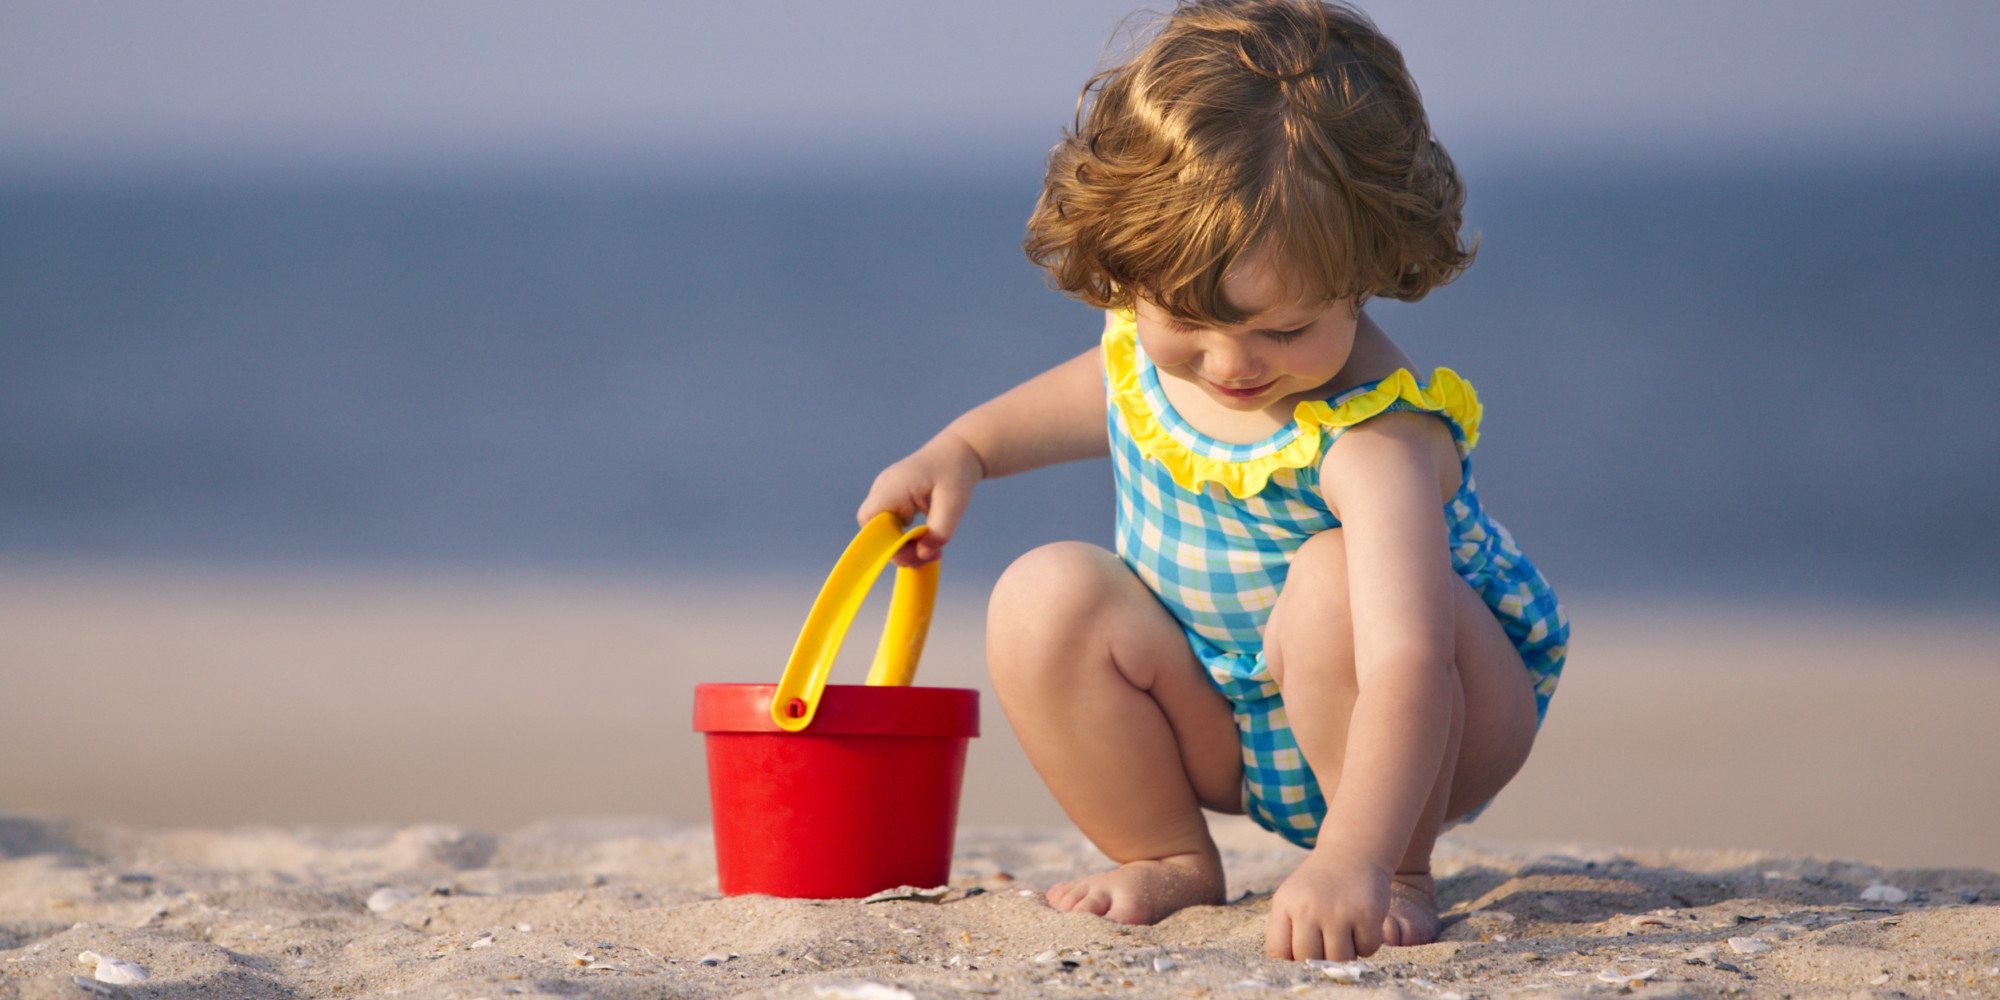 Tips for Sun and Beach Safety for Babies and Toddlers